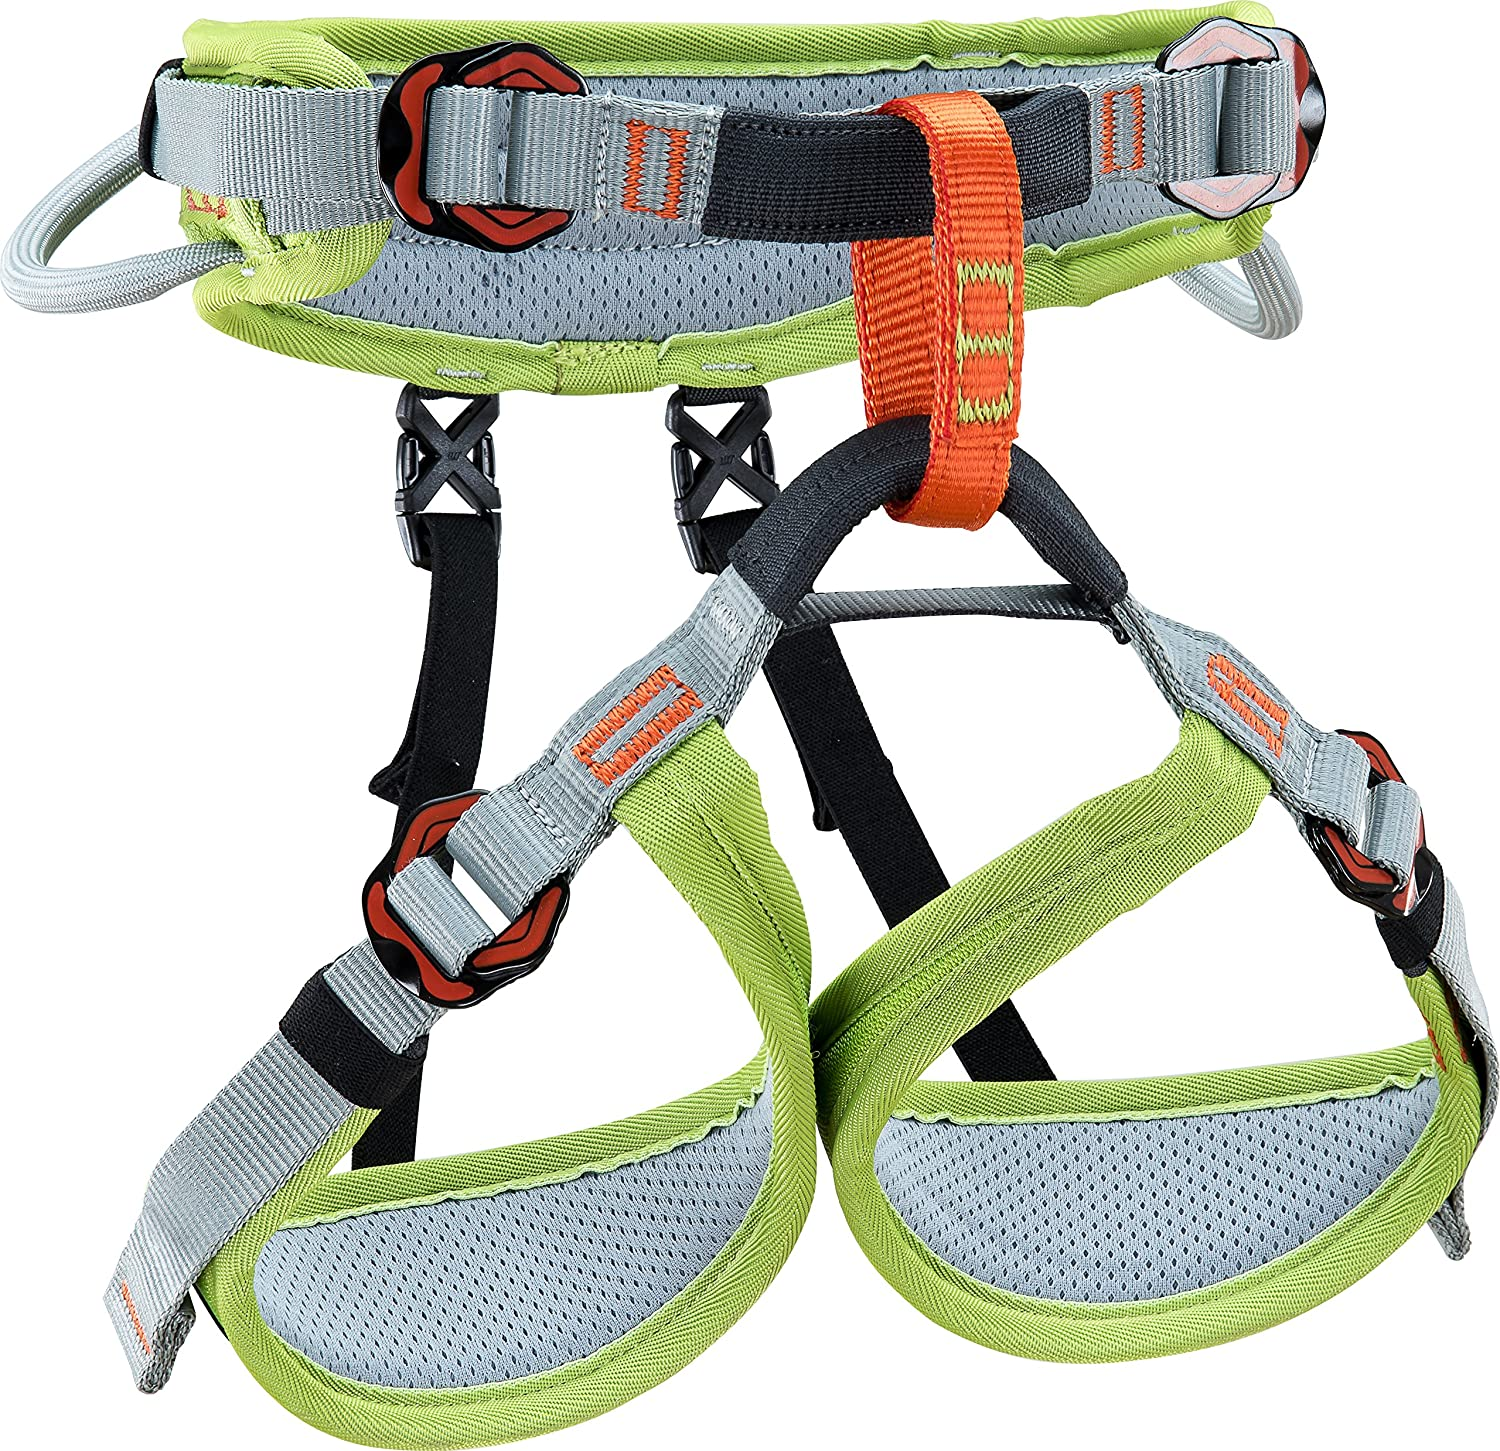 Climbing Technology Ascent - Verde 2018